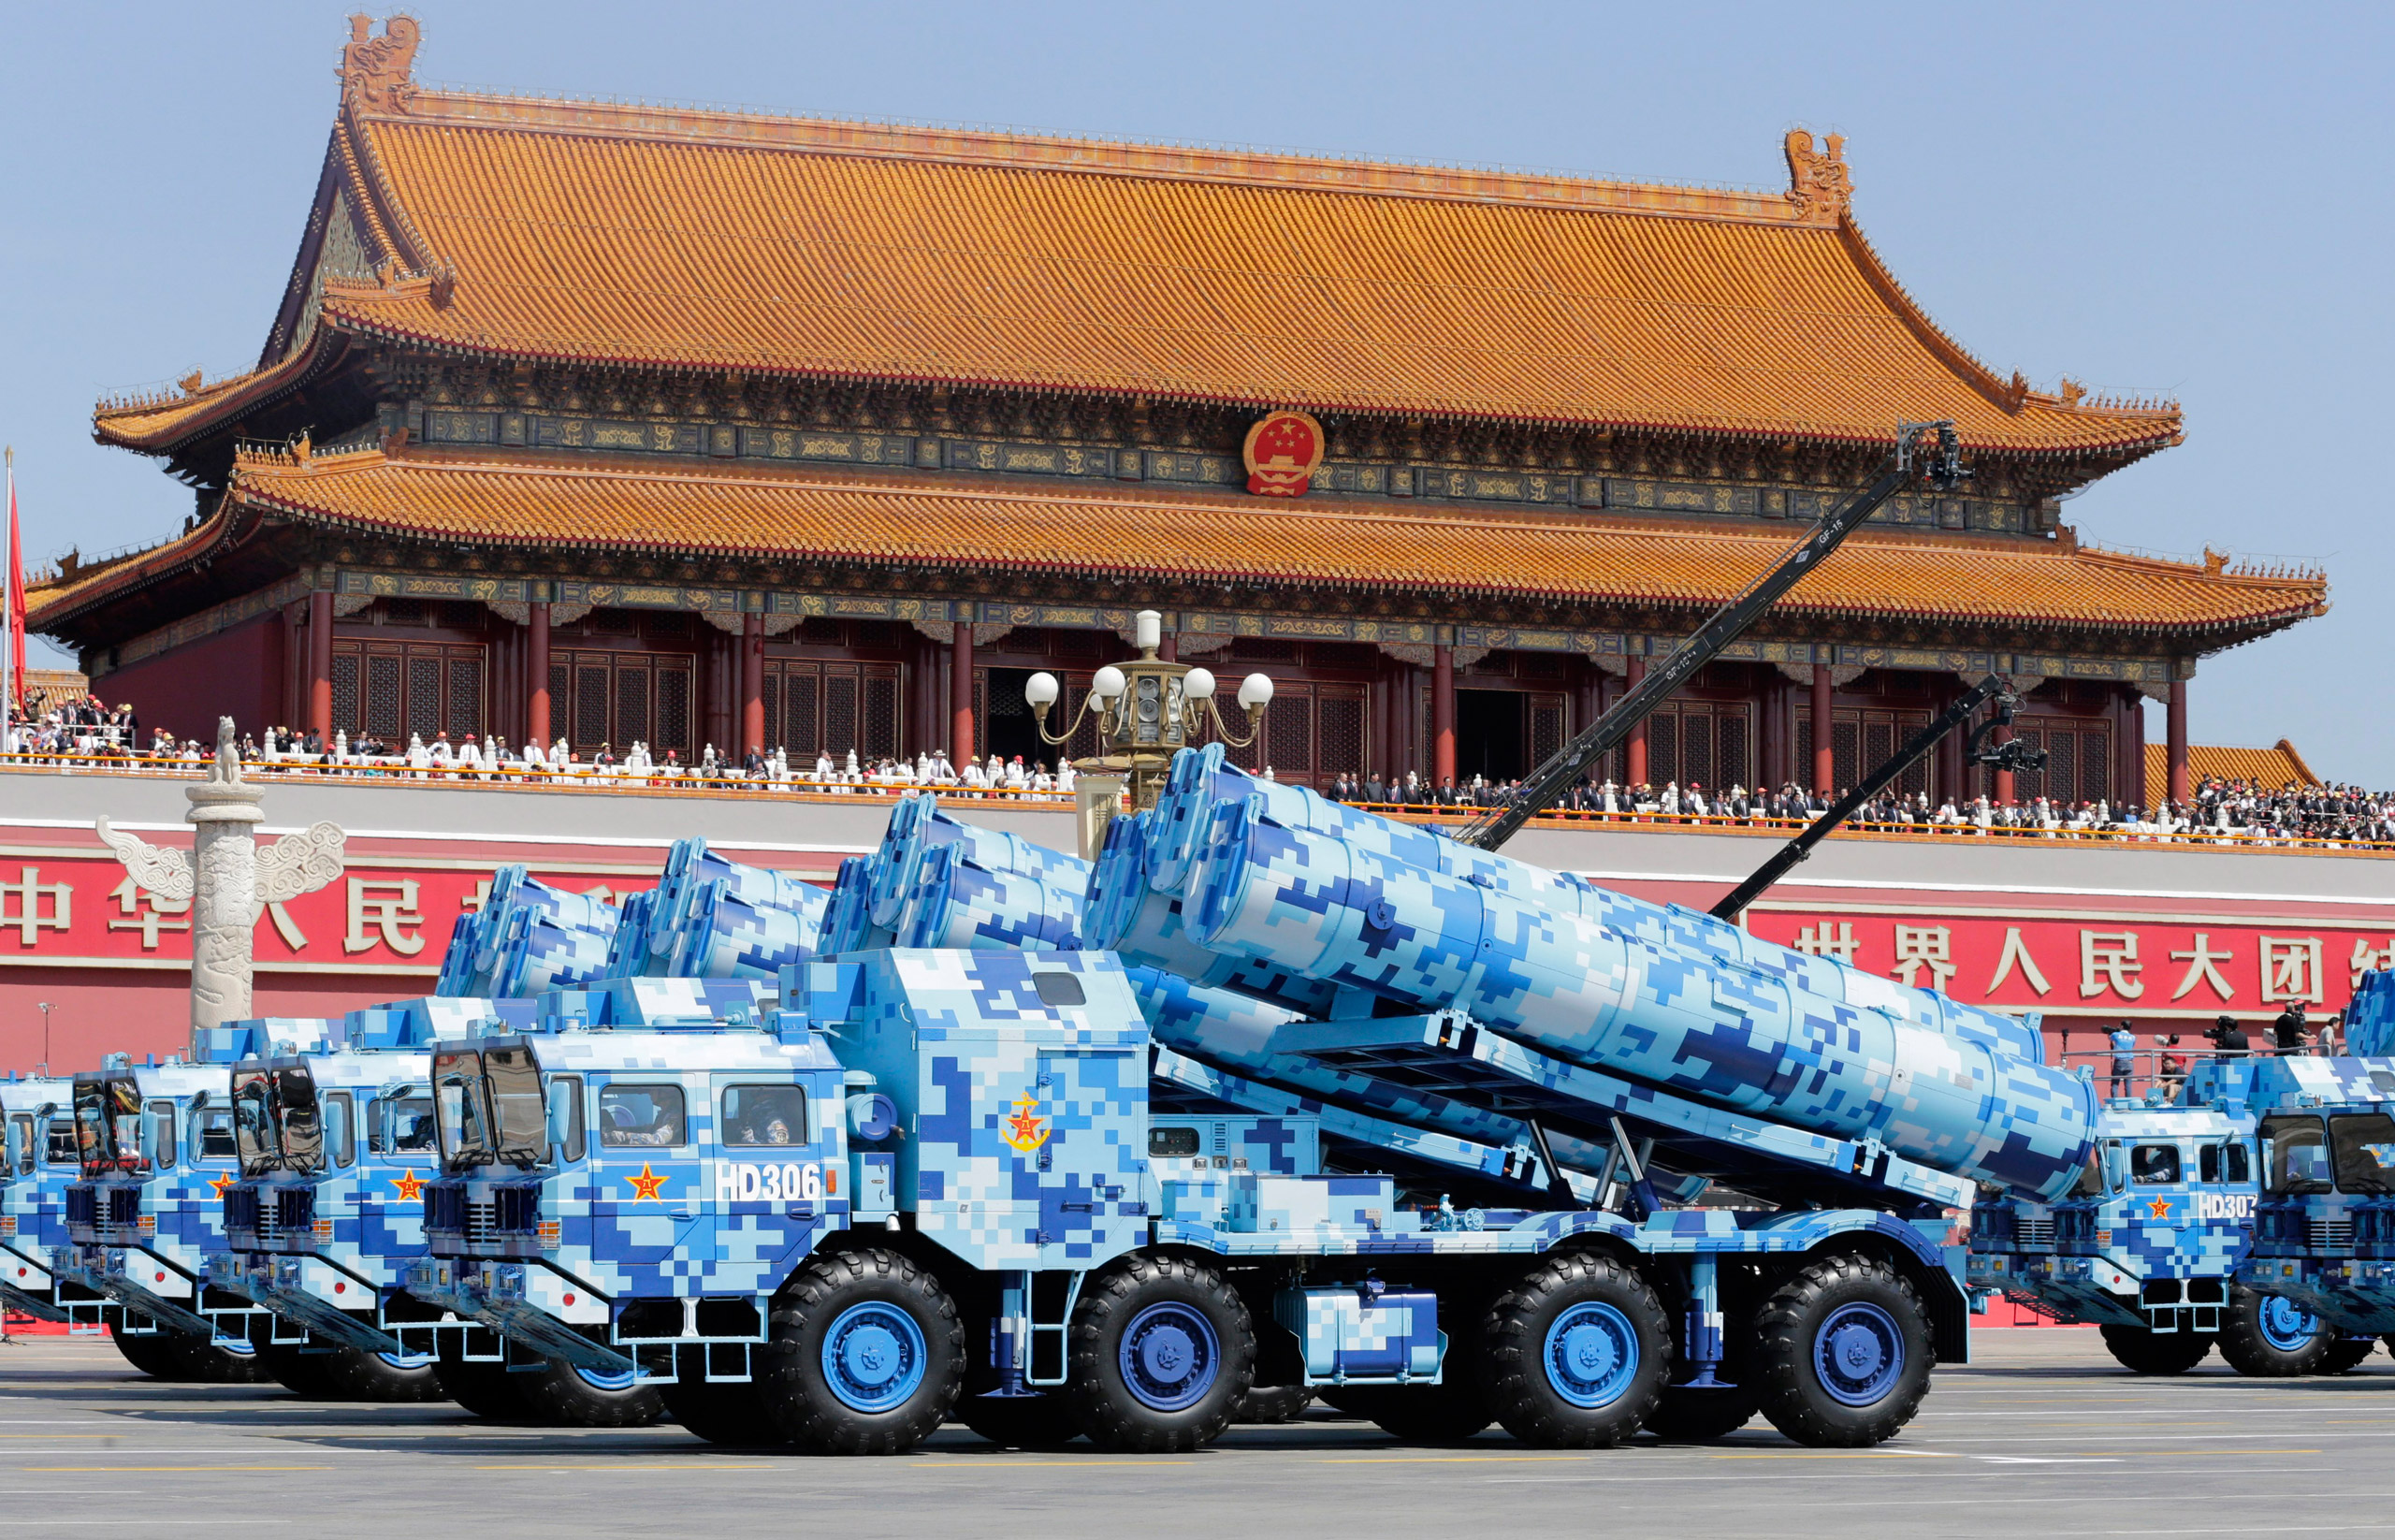 Military vehicles carrying shore-to-ship missiles drive past the Tiananmen Gate during a military parade to mark the 70th anniversary of the end of World War II in Beijing, on Sept. 3, 2015.